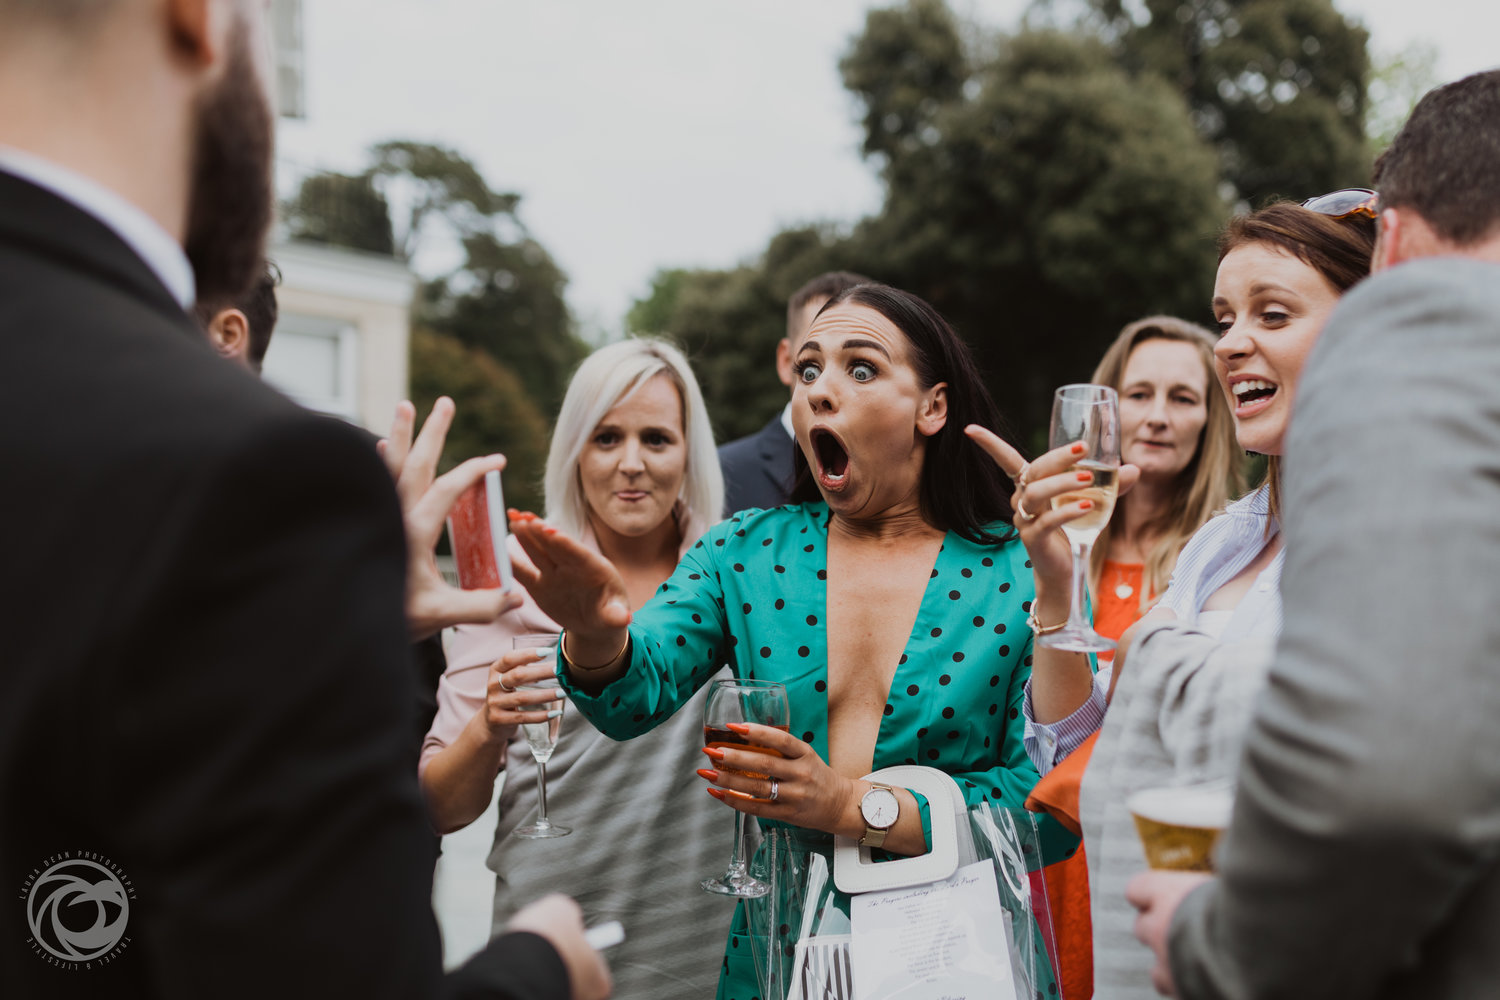 Jawdropping reaction to Dorset Wedding Magician Chris Piercy